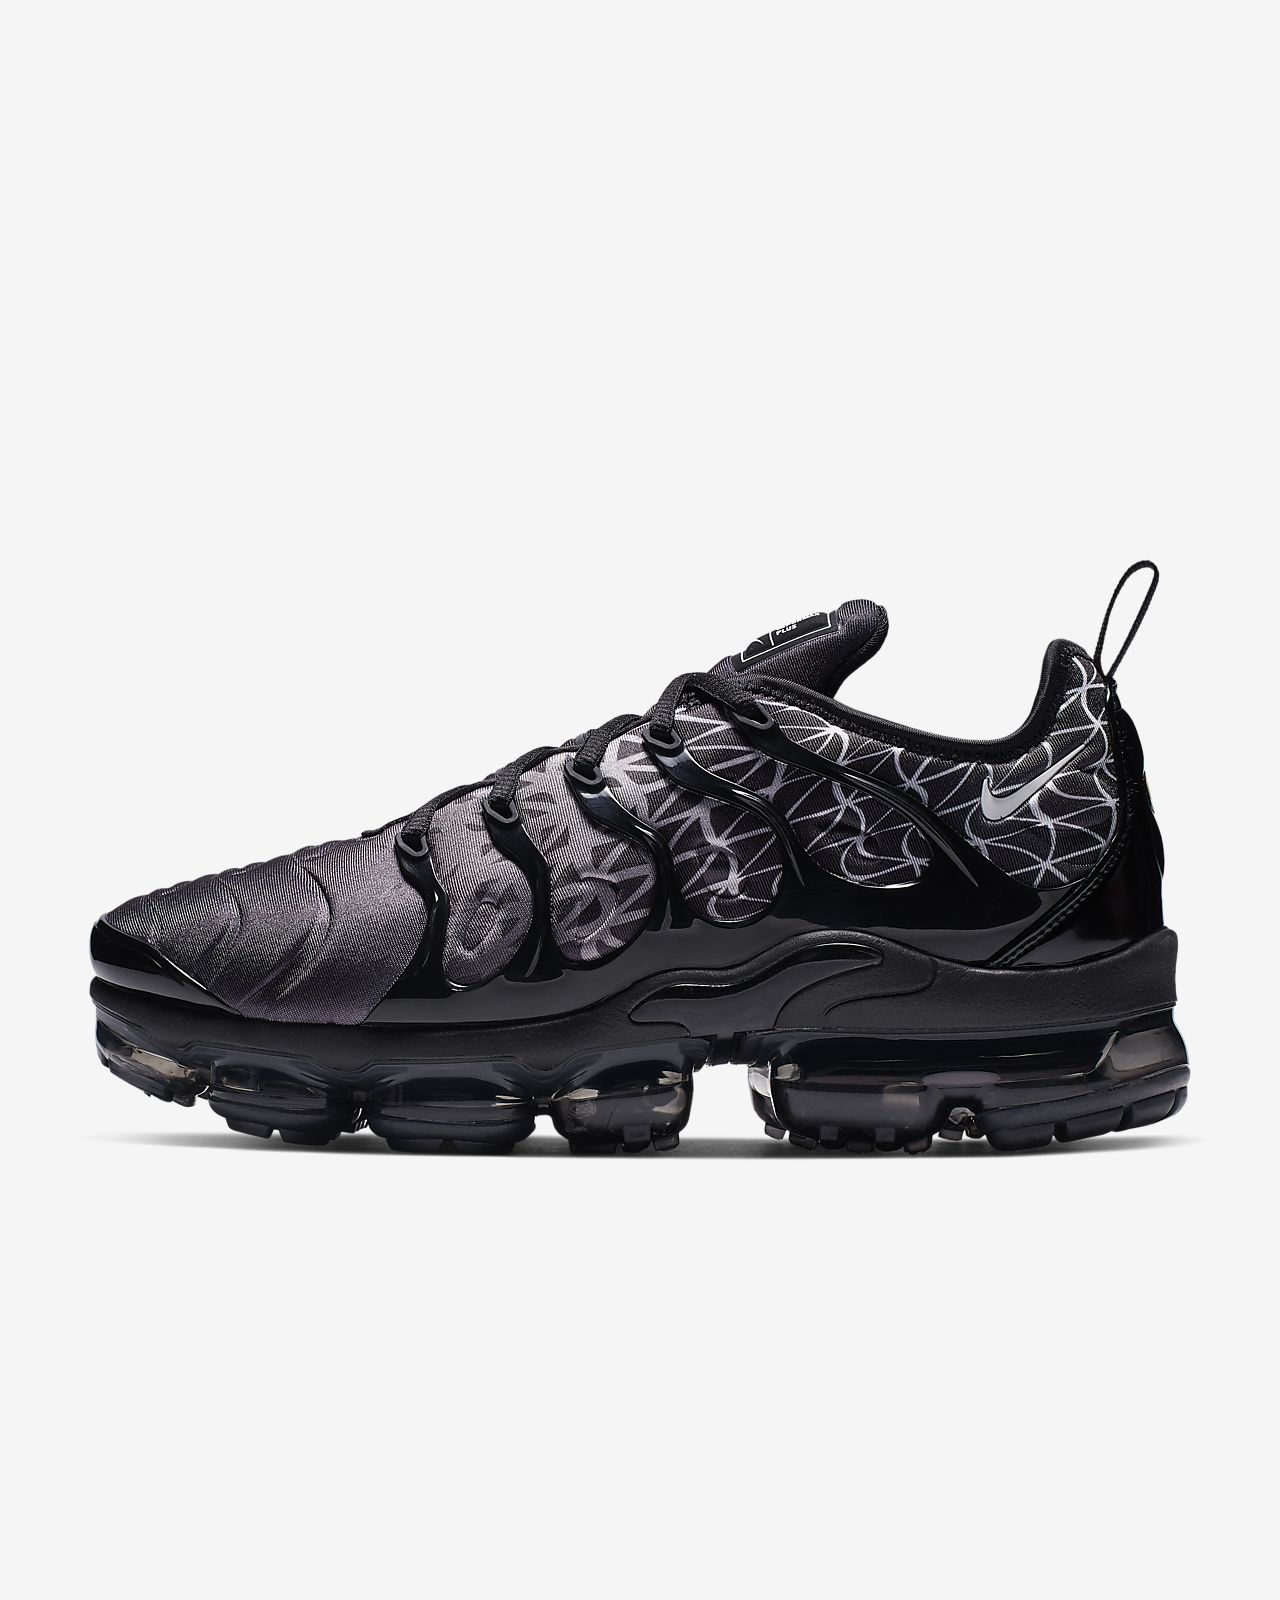 sneakers for cheap c5f14 df8a4 ... Chaussure Nike Air VaporMax Plus pour Homme